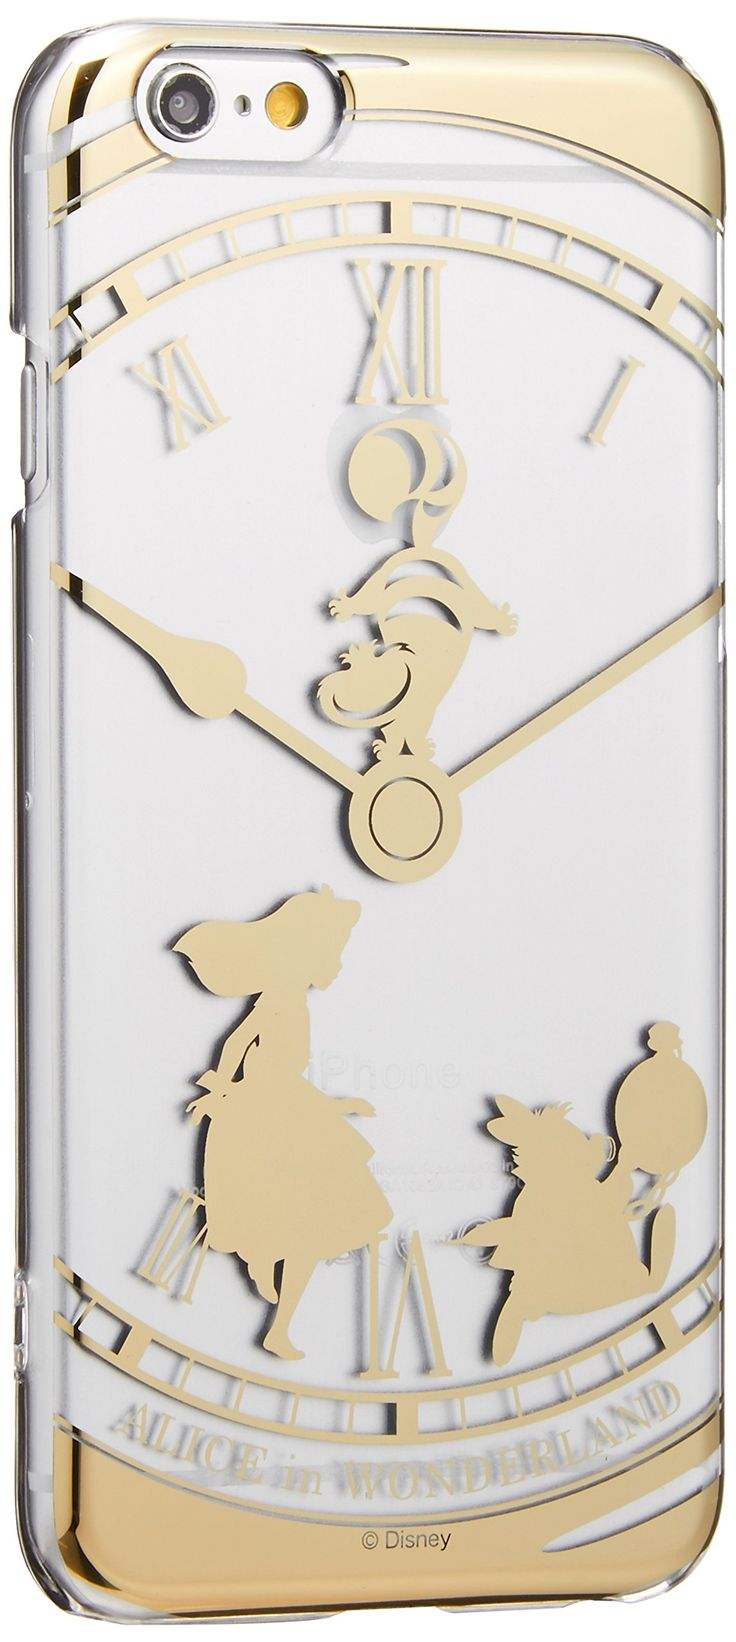 Amazon.com: iPhone 6 (NOT 6 Plus) Clear Case - Disney - Alice in Wonderland: Cell Phones & Accessories